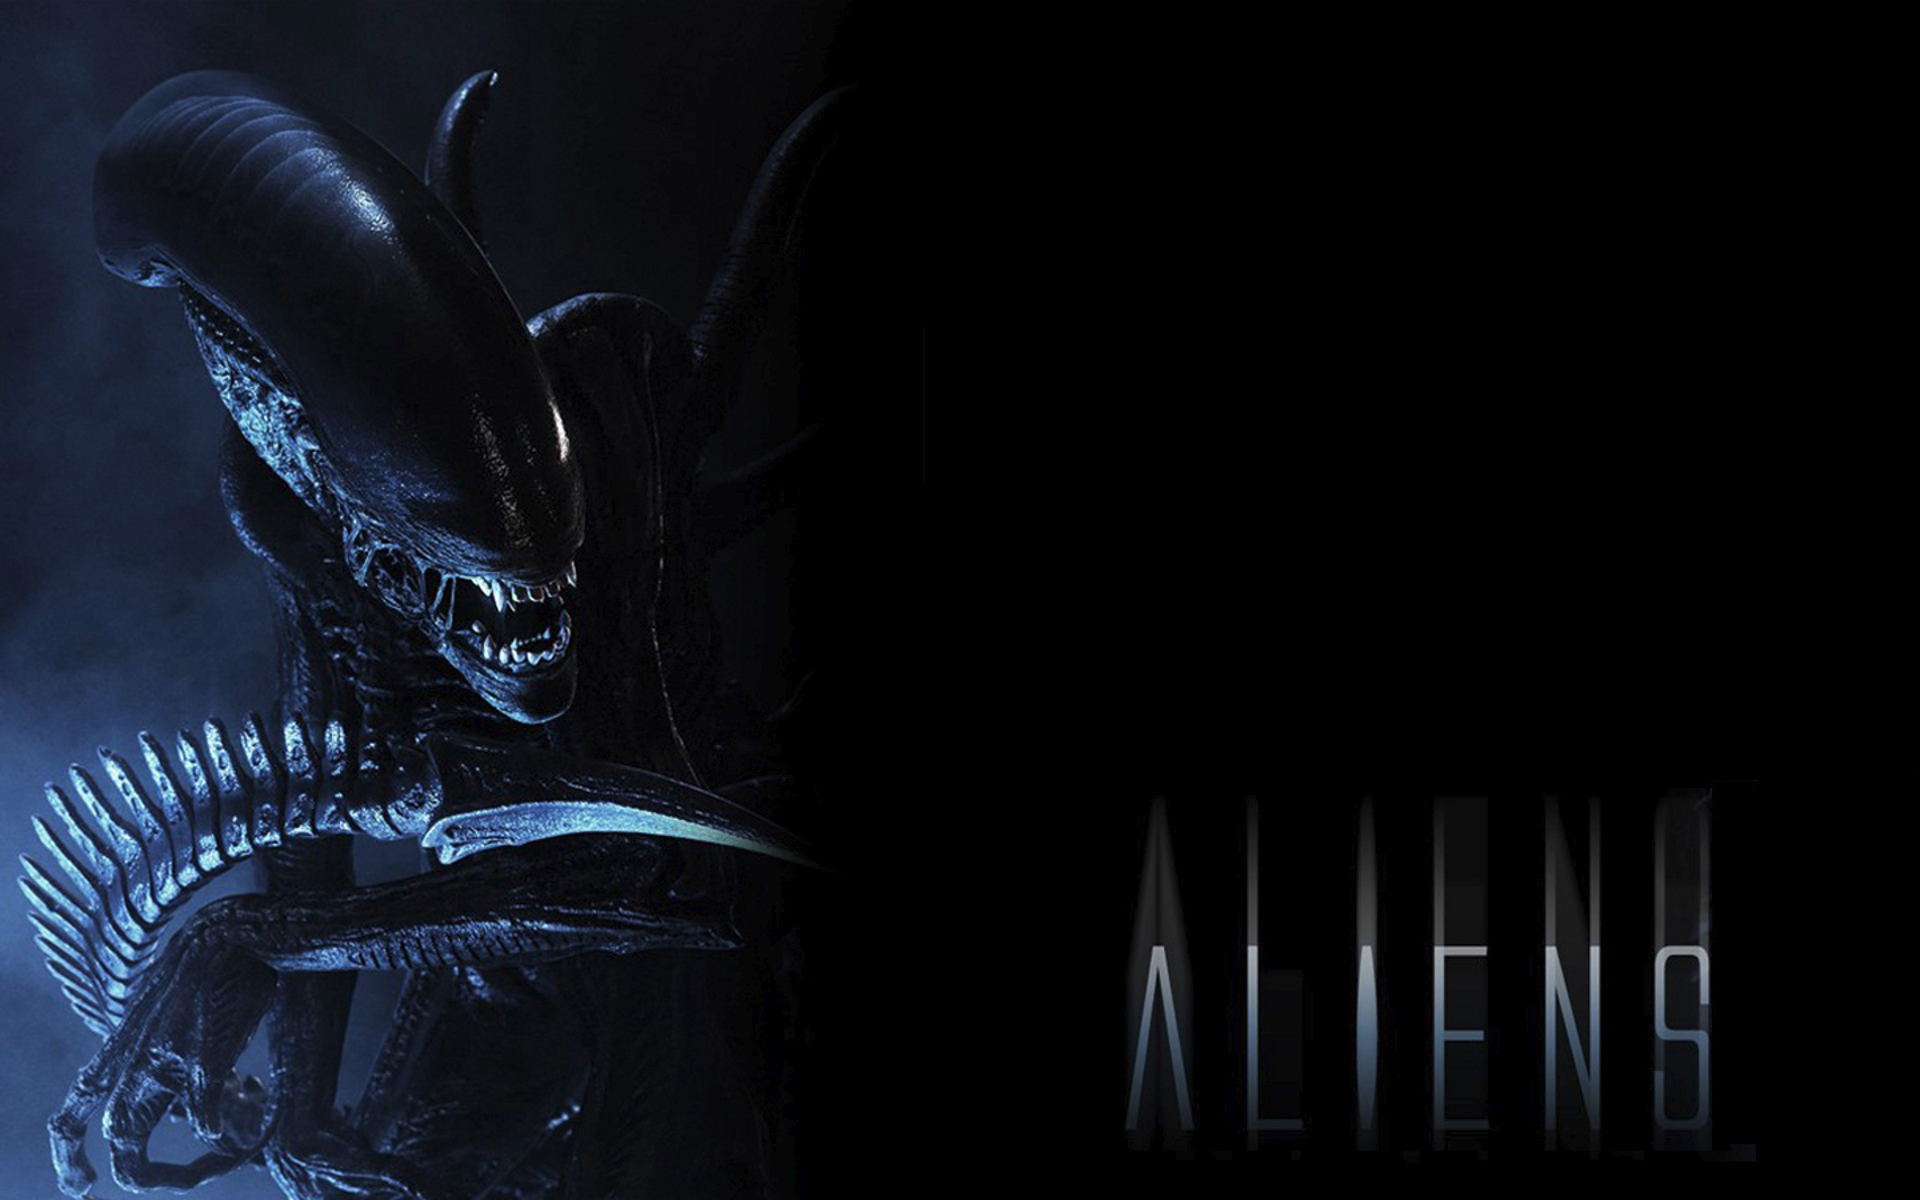 ALIENS HD Wallpapers Pictures Hd Wallpapers 1920x1200